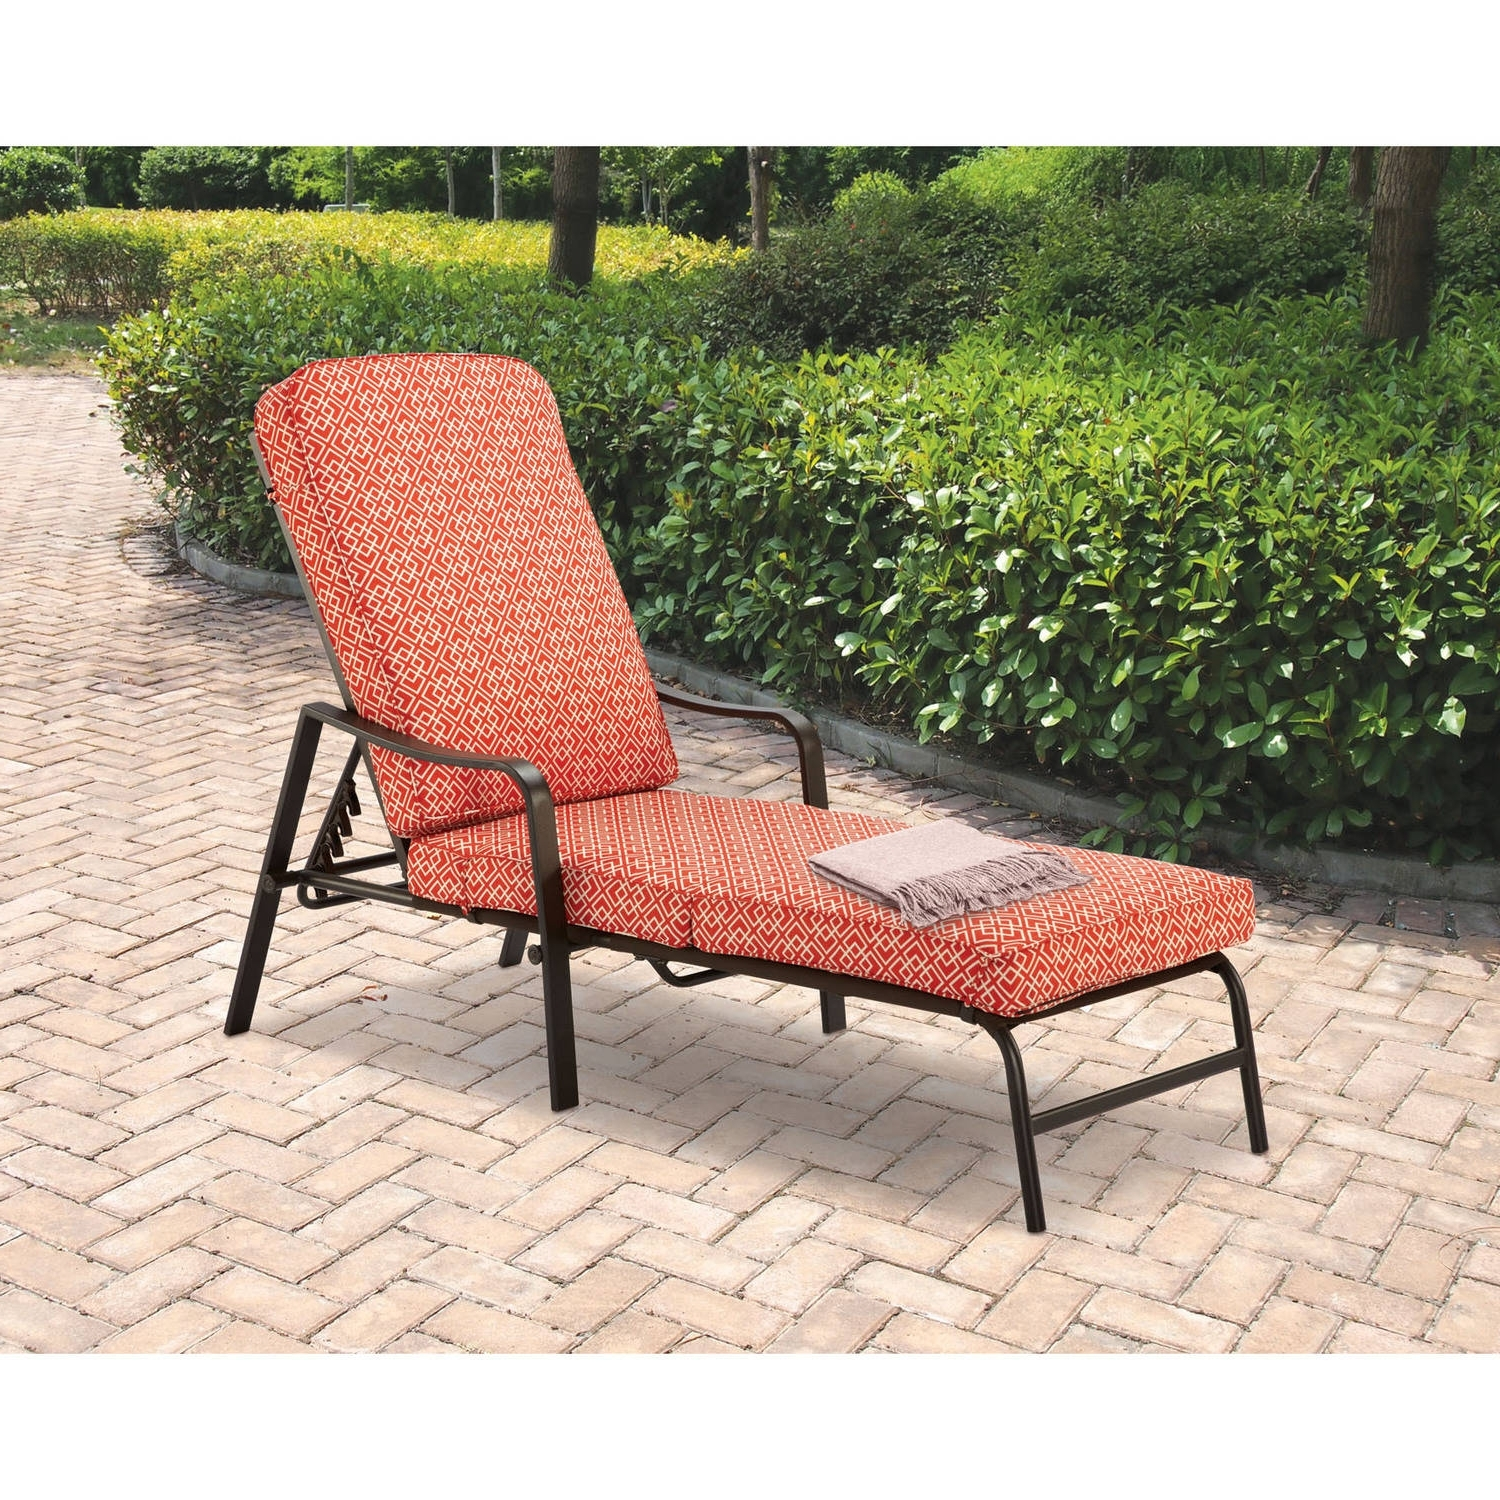 Popular Mainstays Outdoor Chaise Lounge, Orange Geo Pattern – Walmart Intended For Walmart Chaises (View 10 of 15)